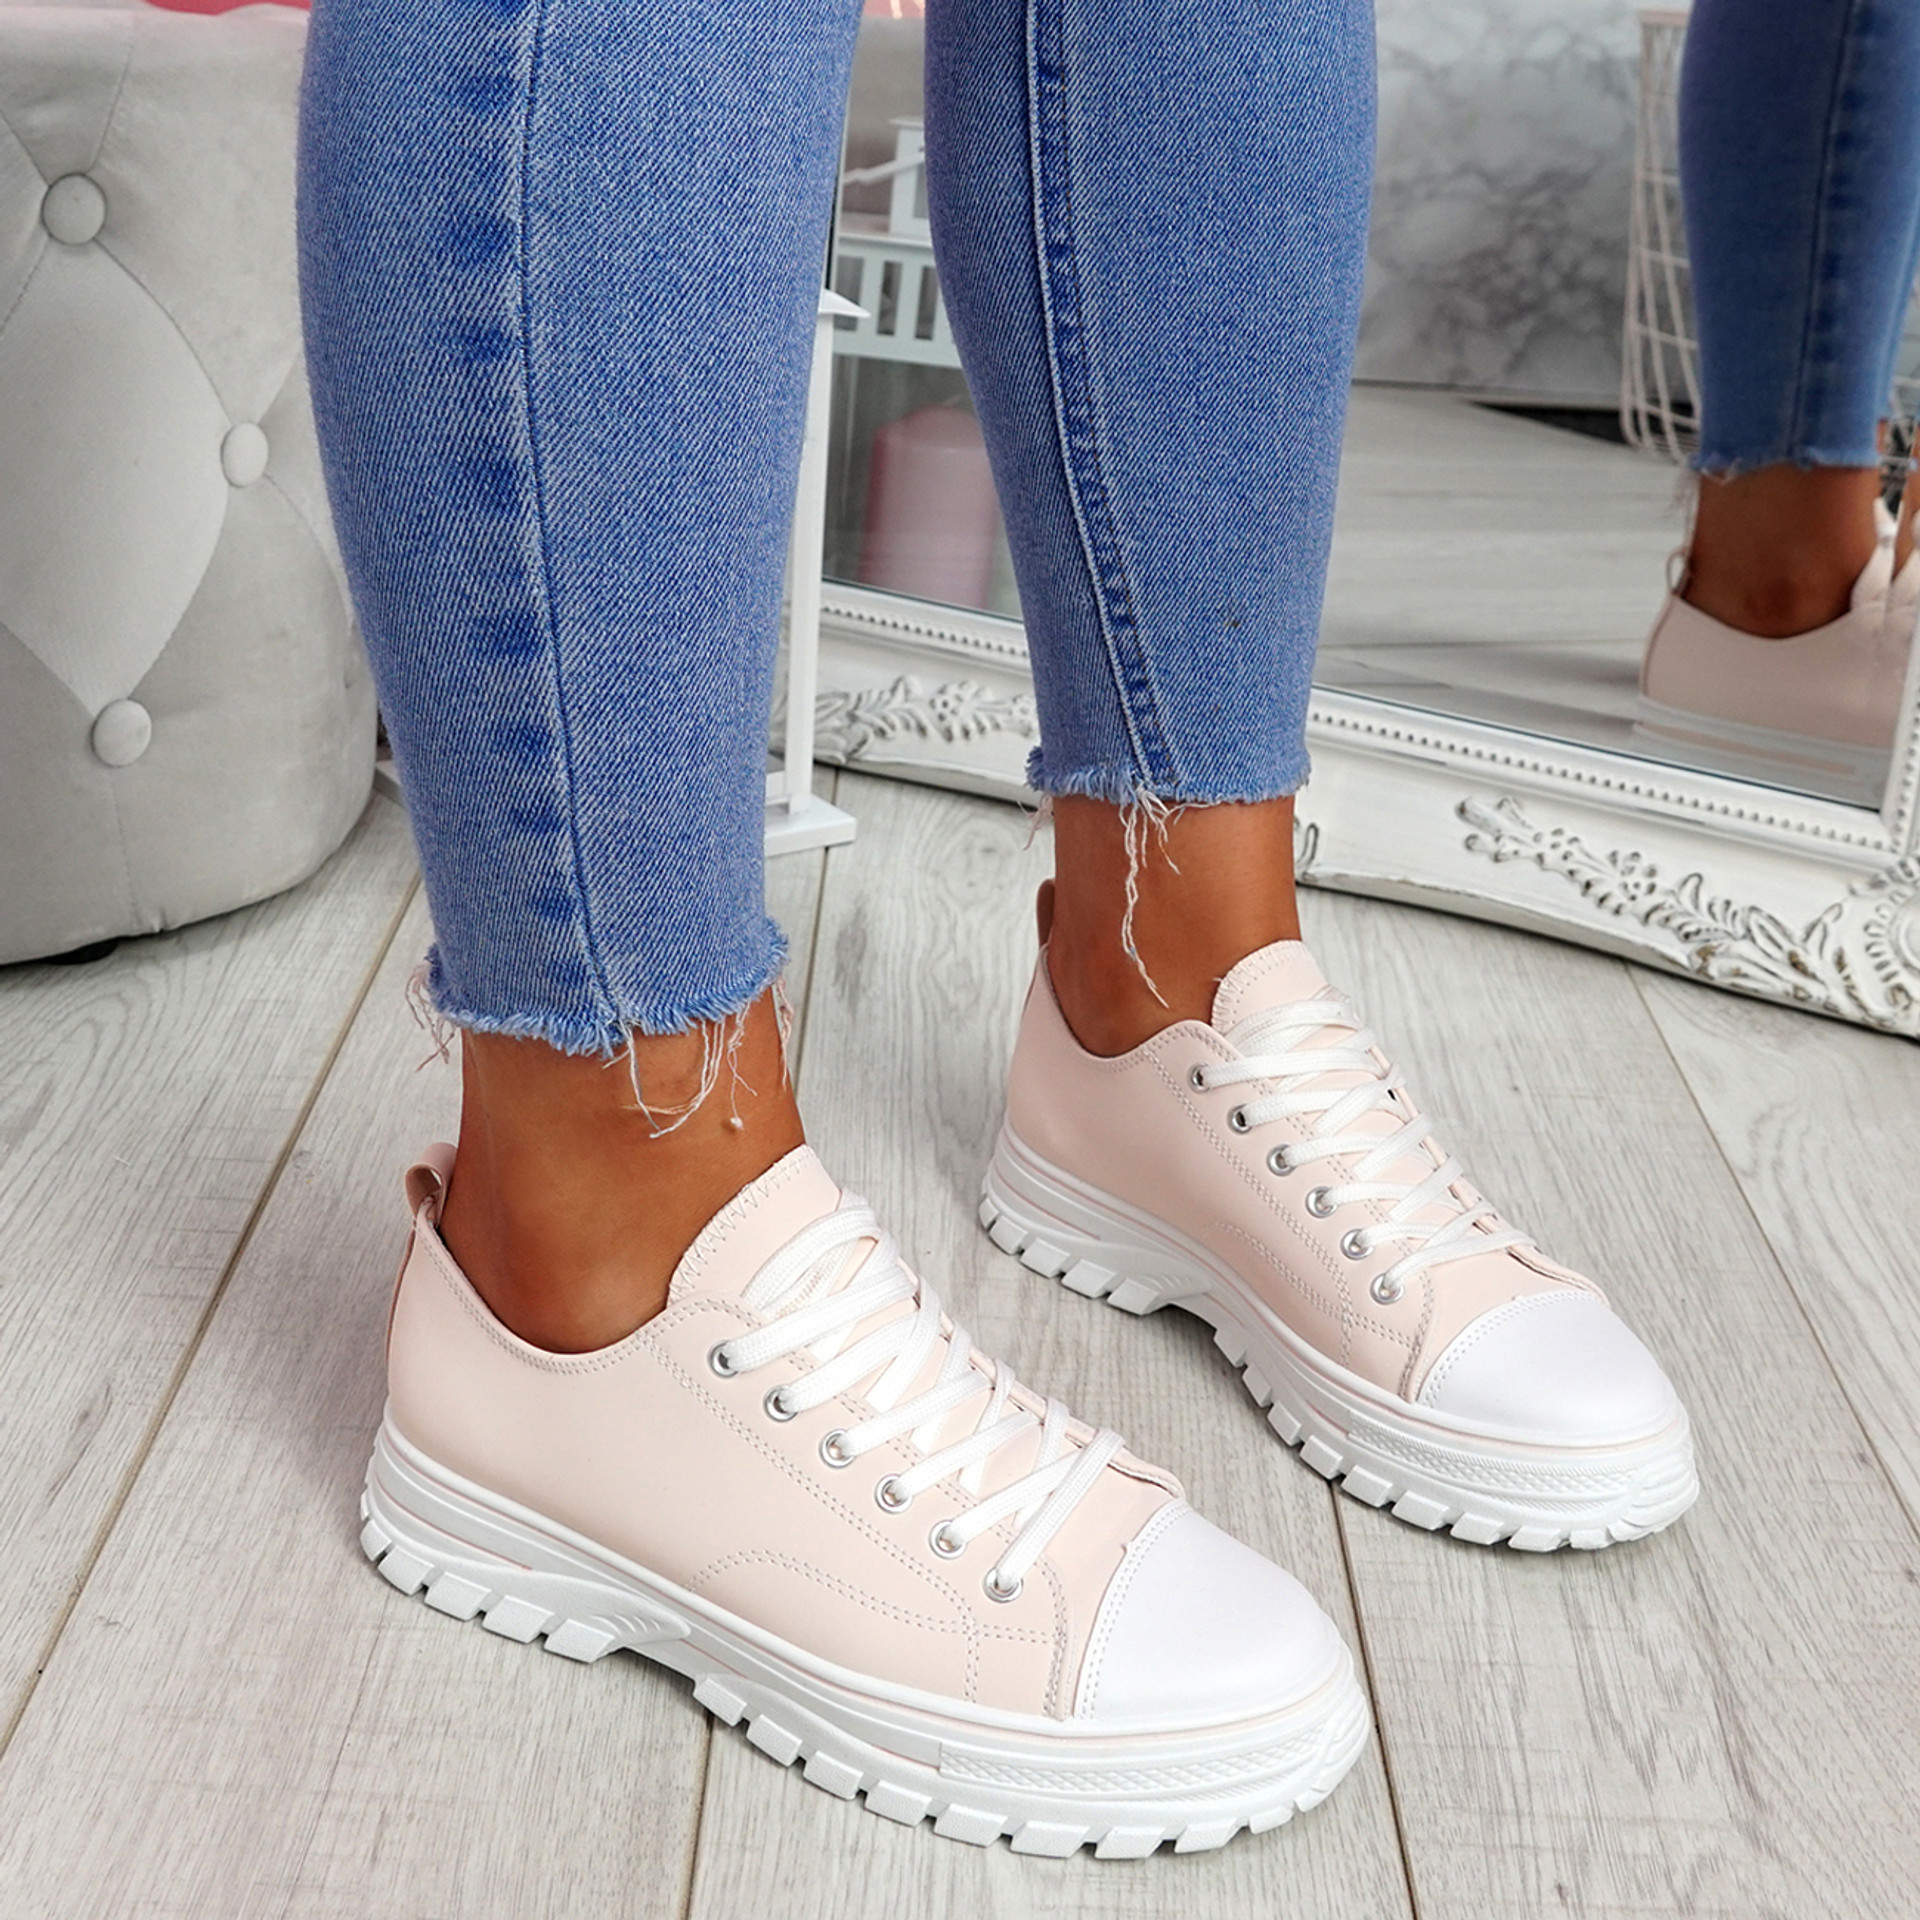 Ledde Pink Lace Up Trainers